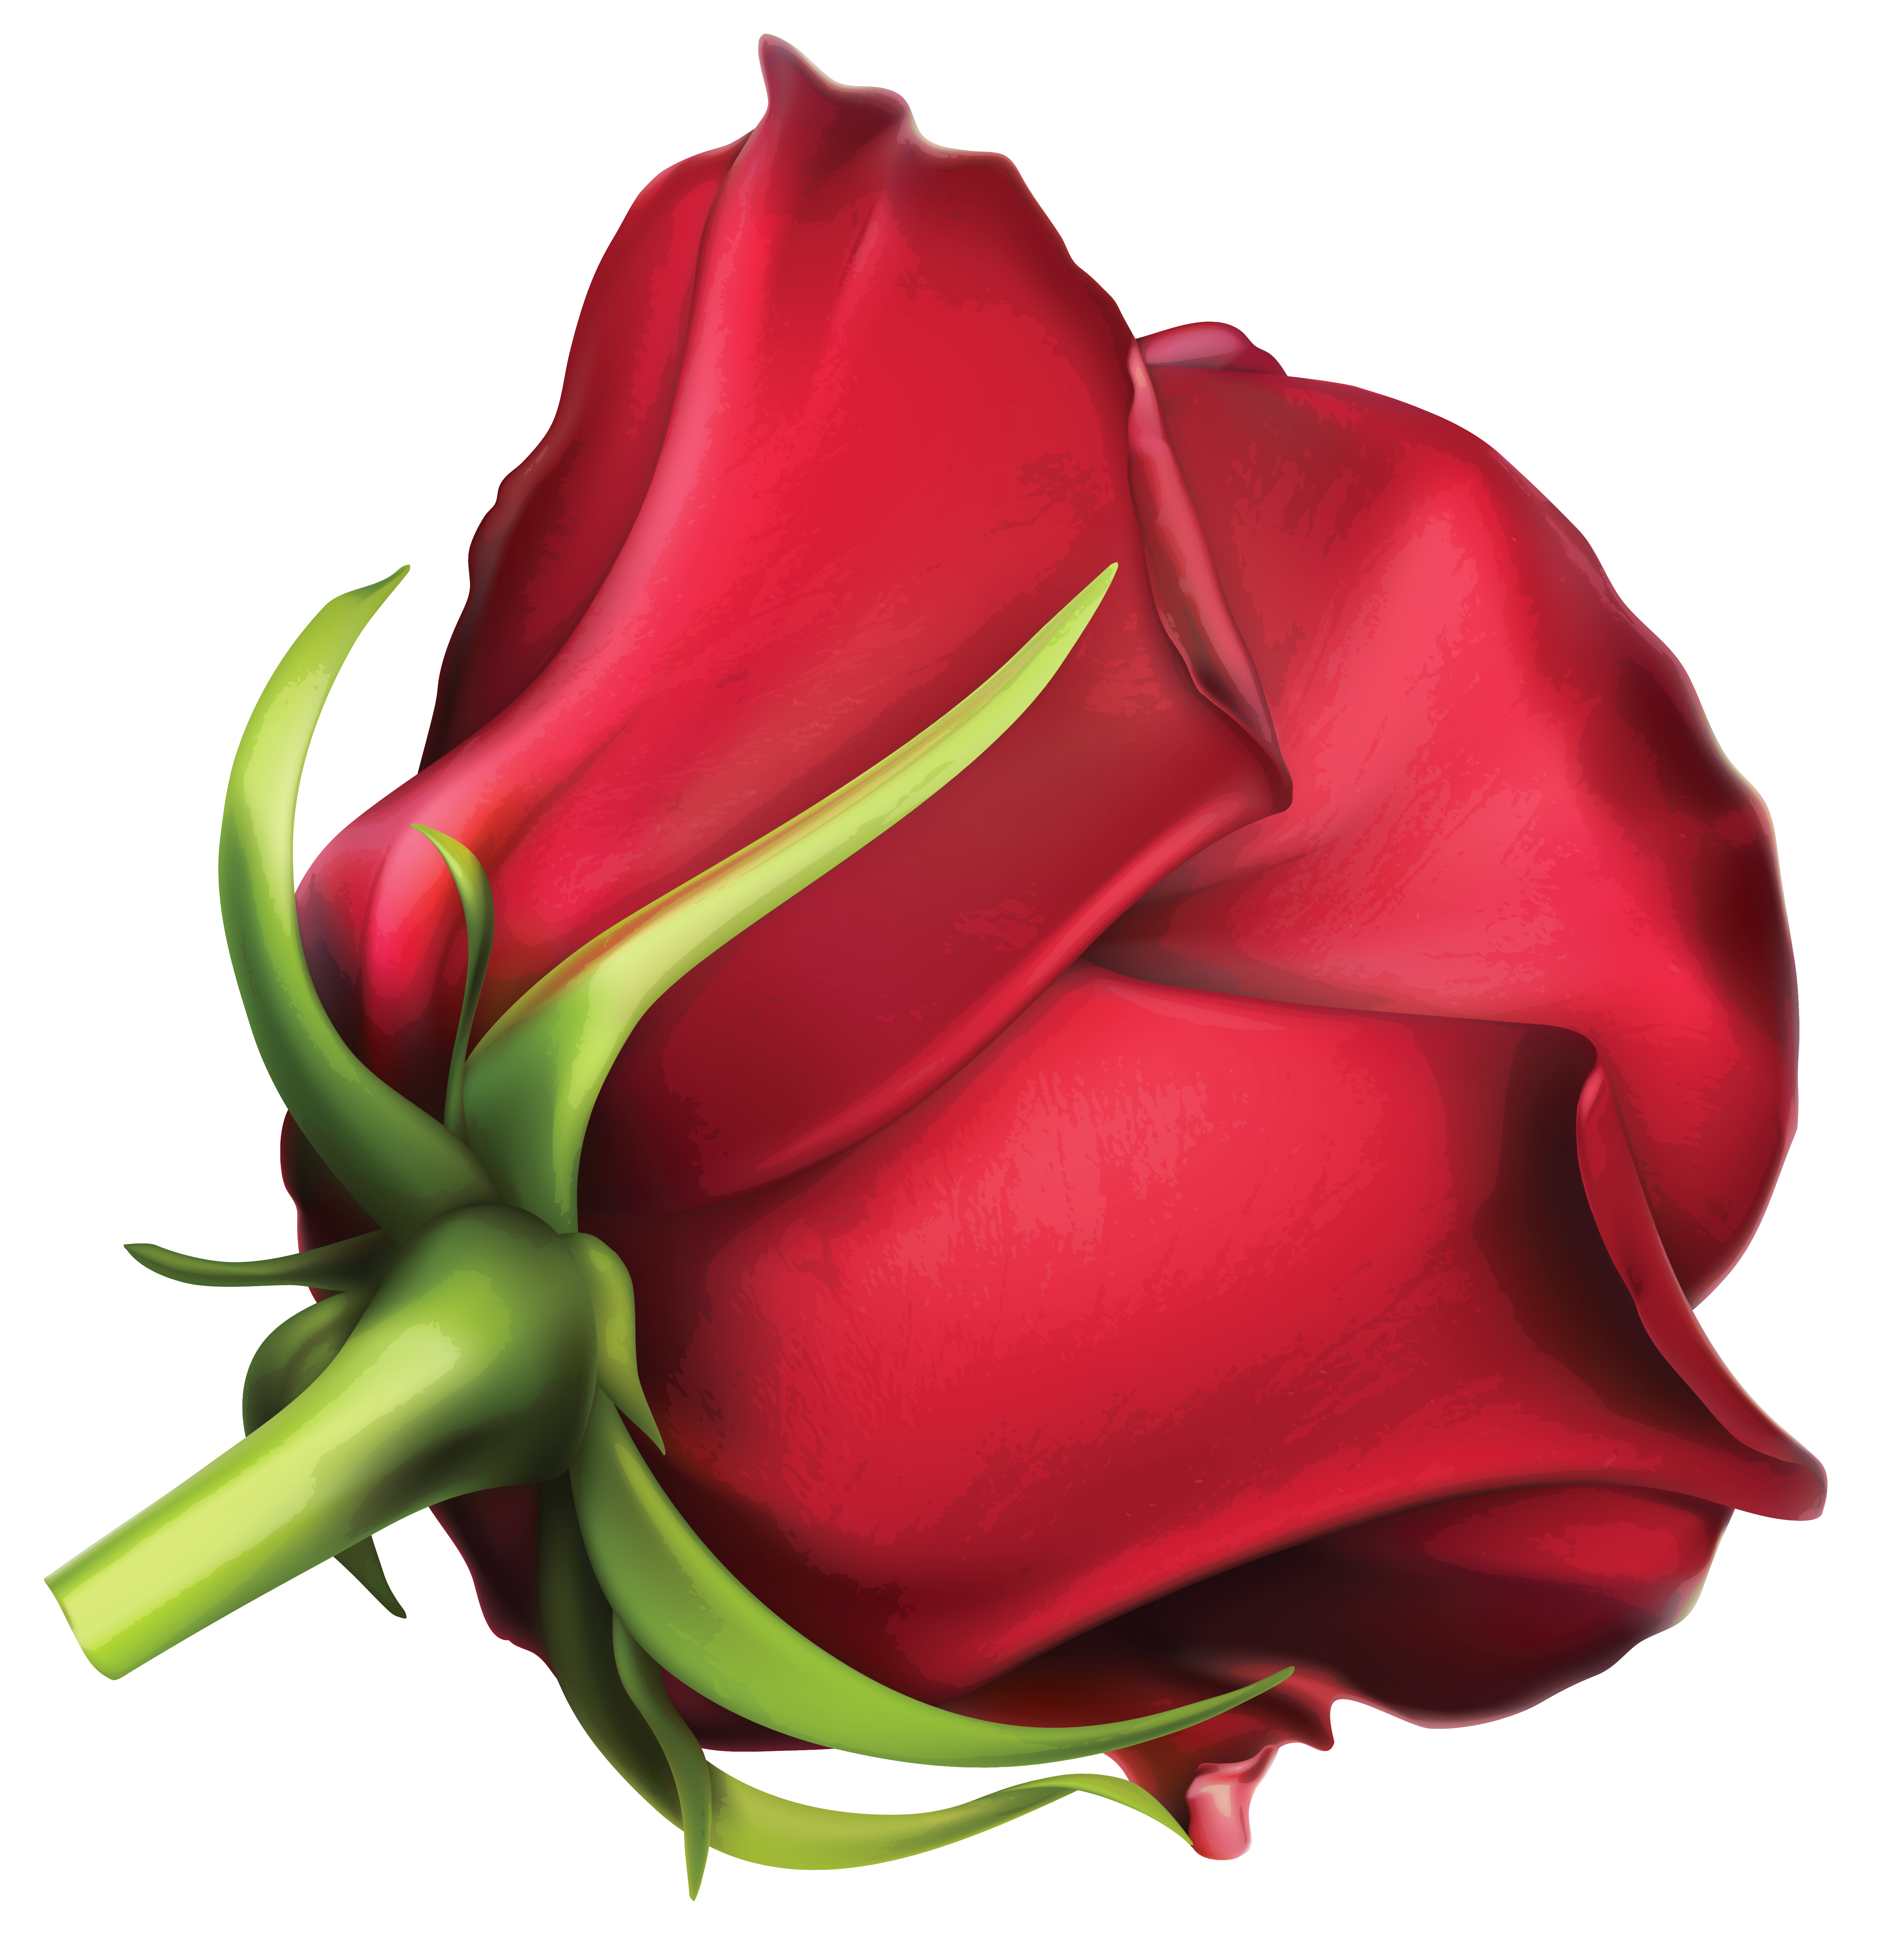 Rose pinart view full. Families clipart red